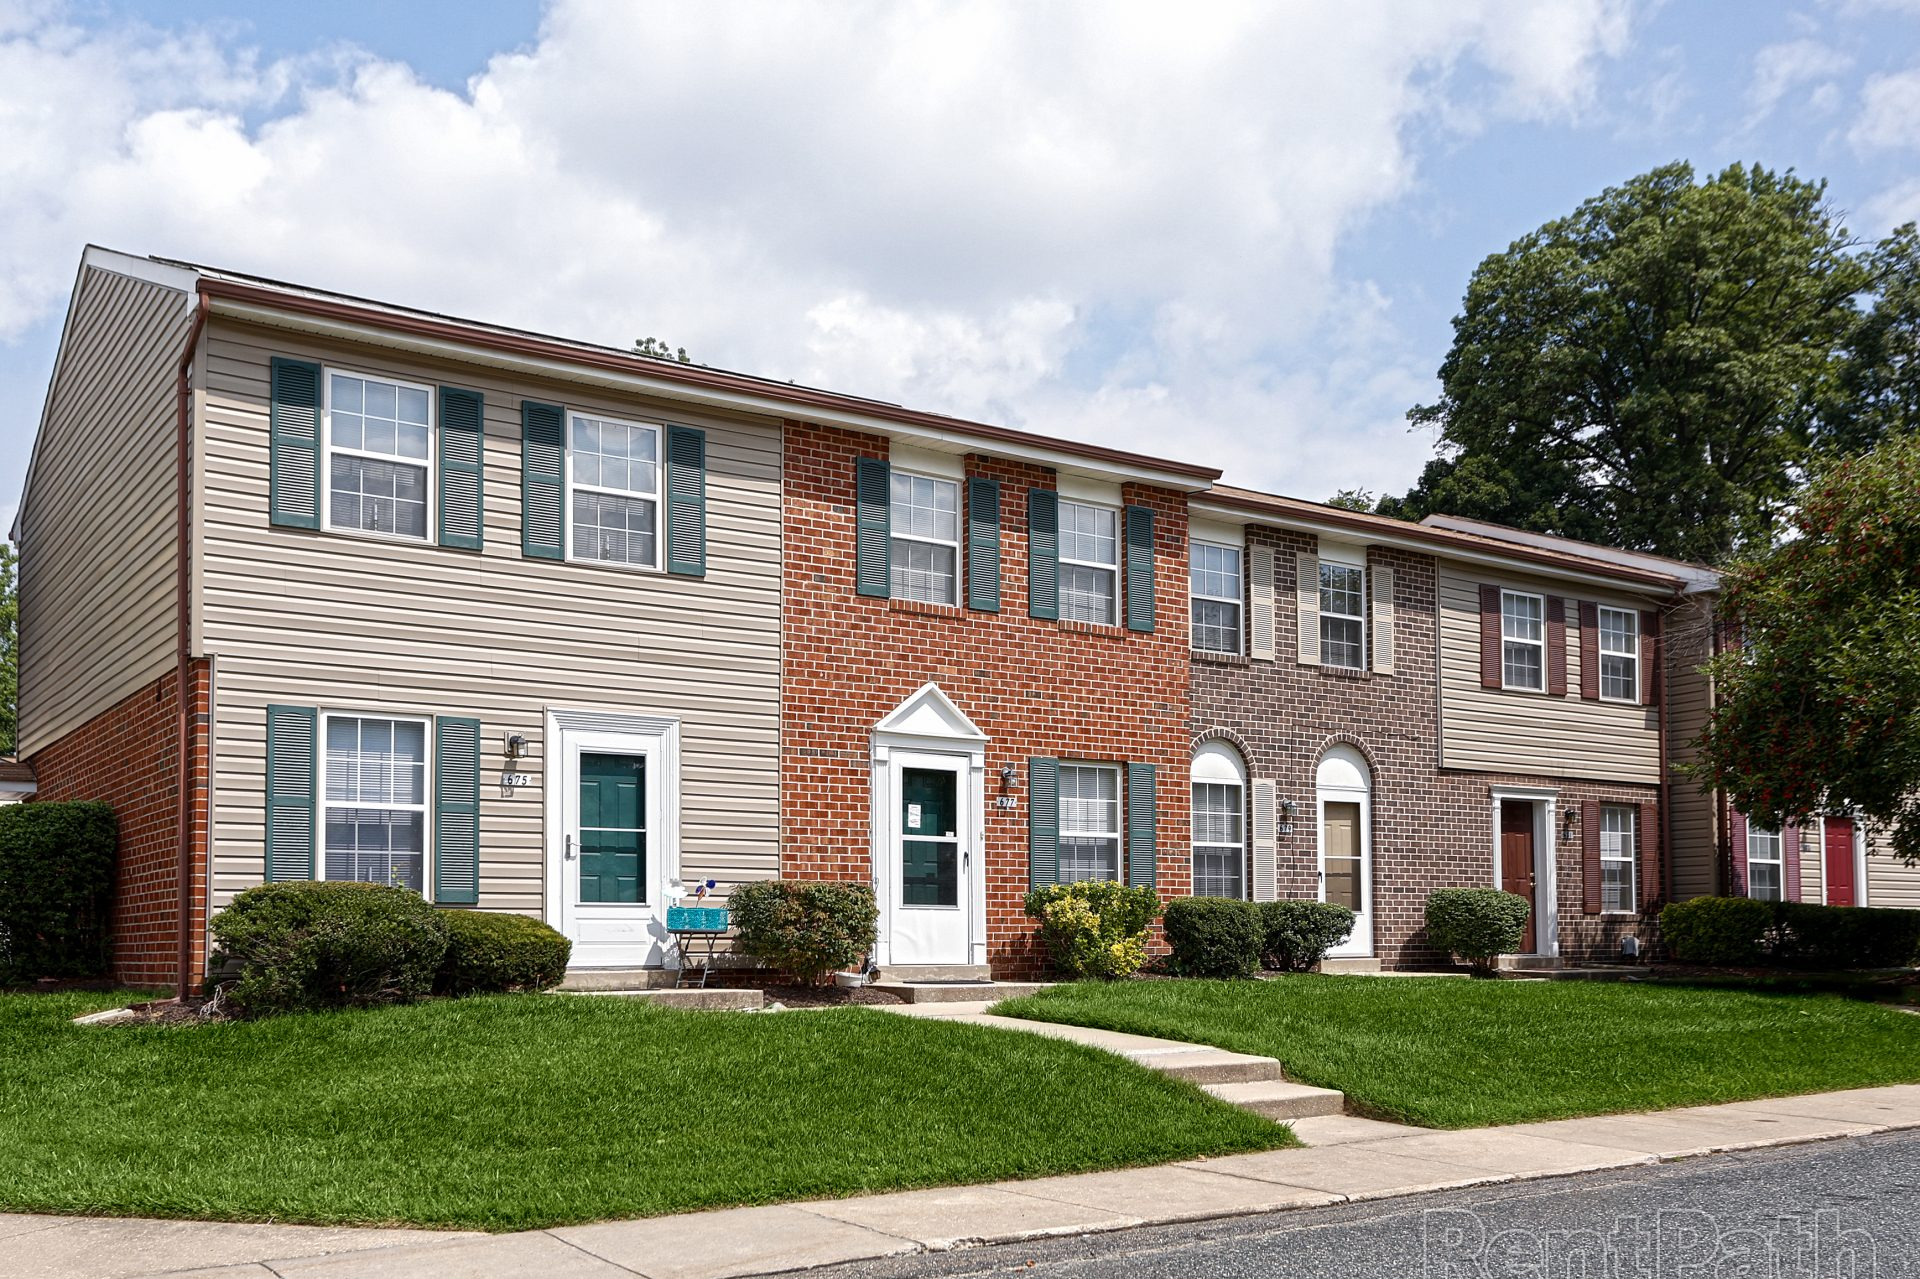 Apartments for Rent in Maryland